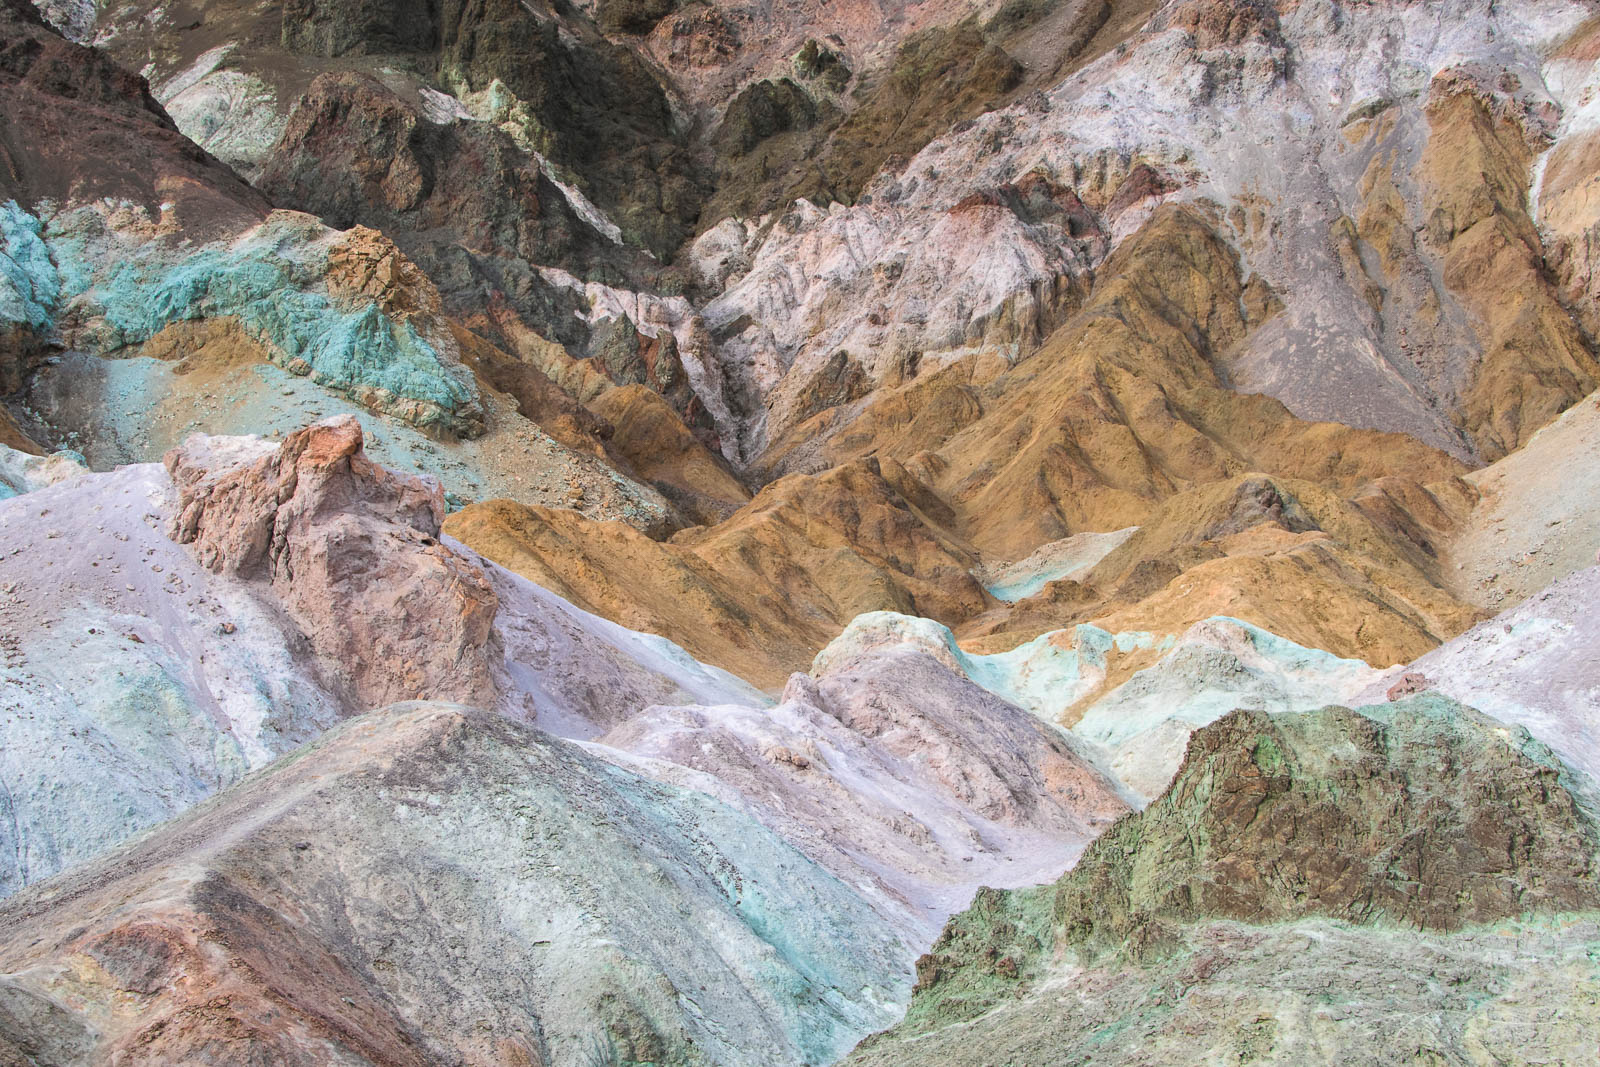 Colorful badlands in pastels of pink, green and brown glow in soft light.